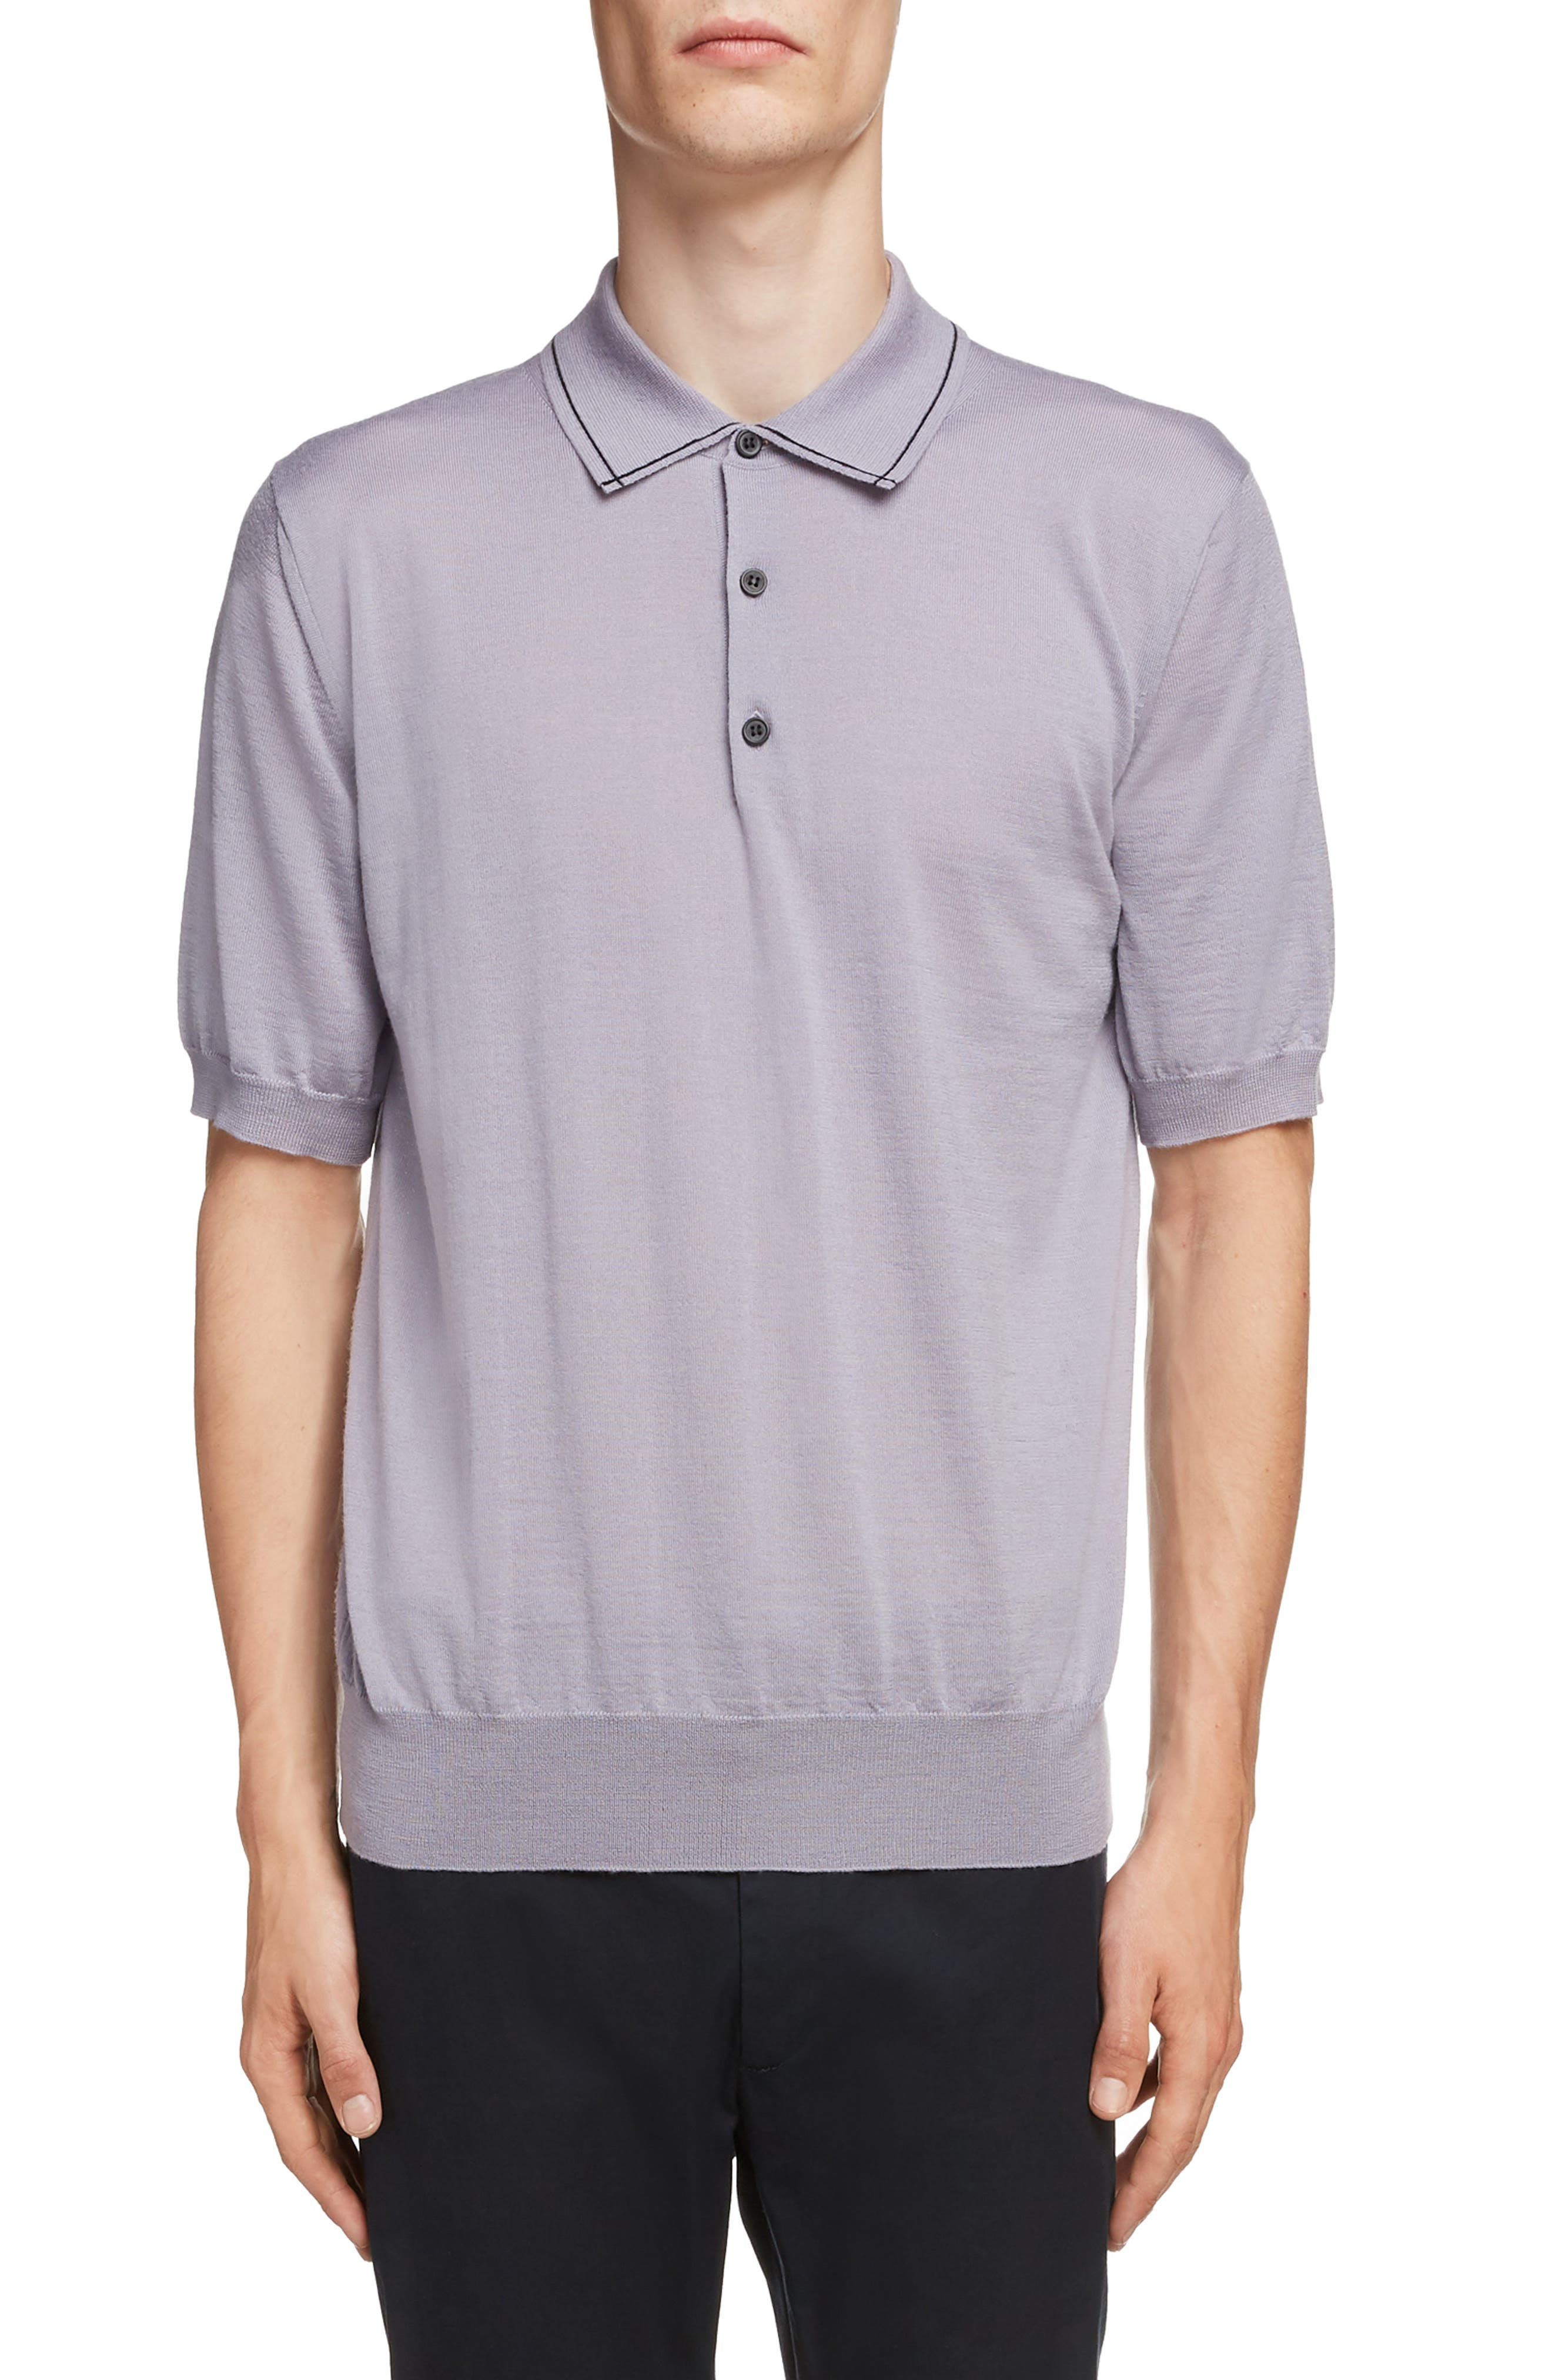 LANVIN Piped Collar Wool Polo, Main, color, LAVENDER